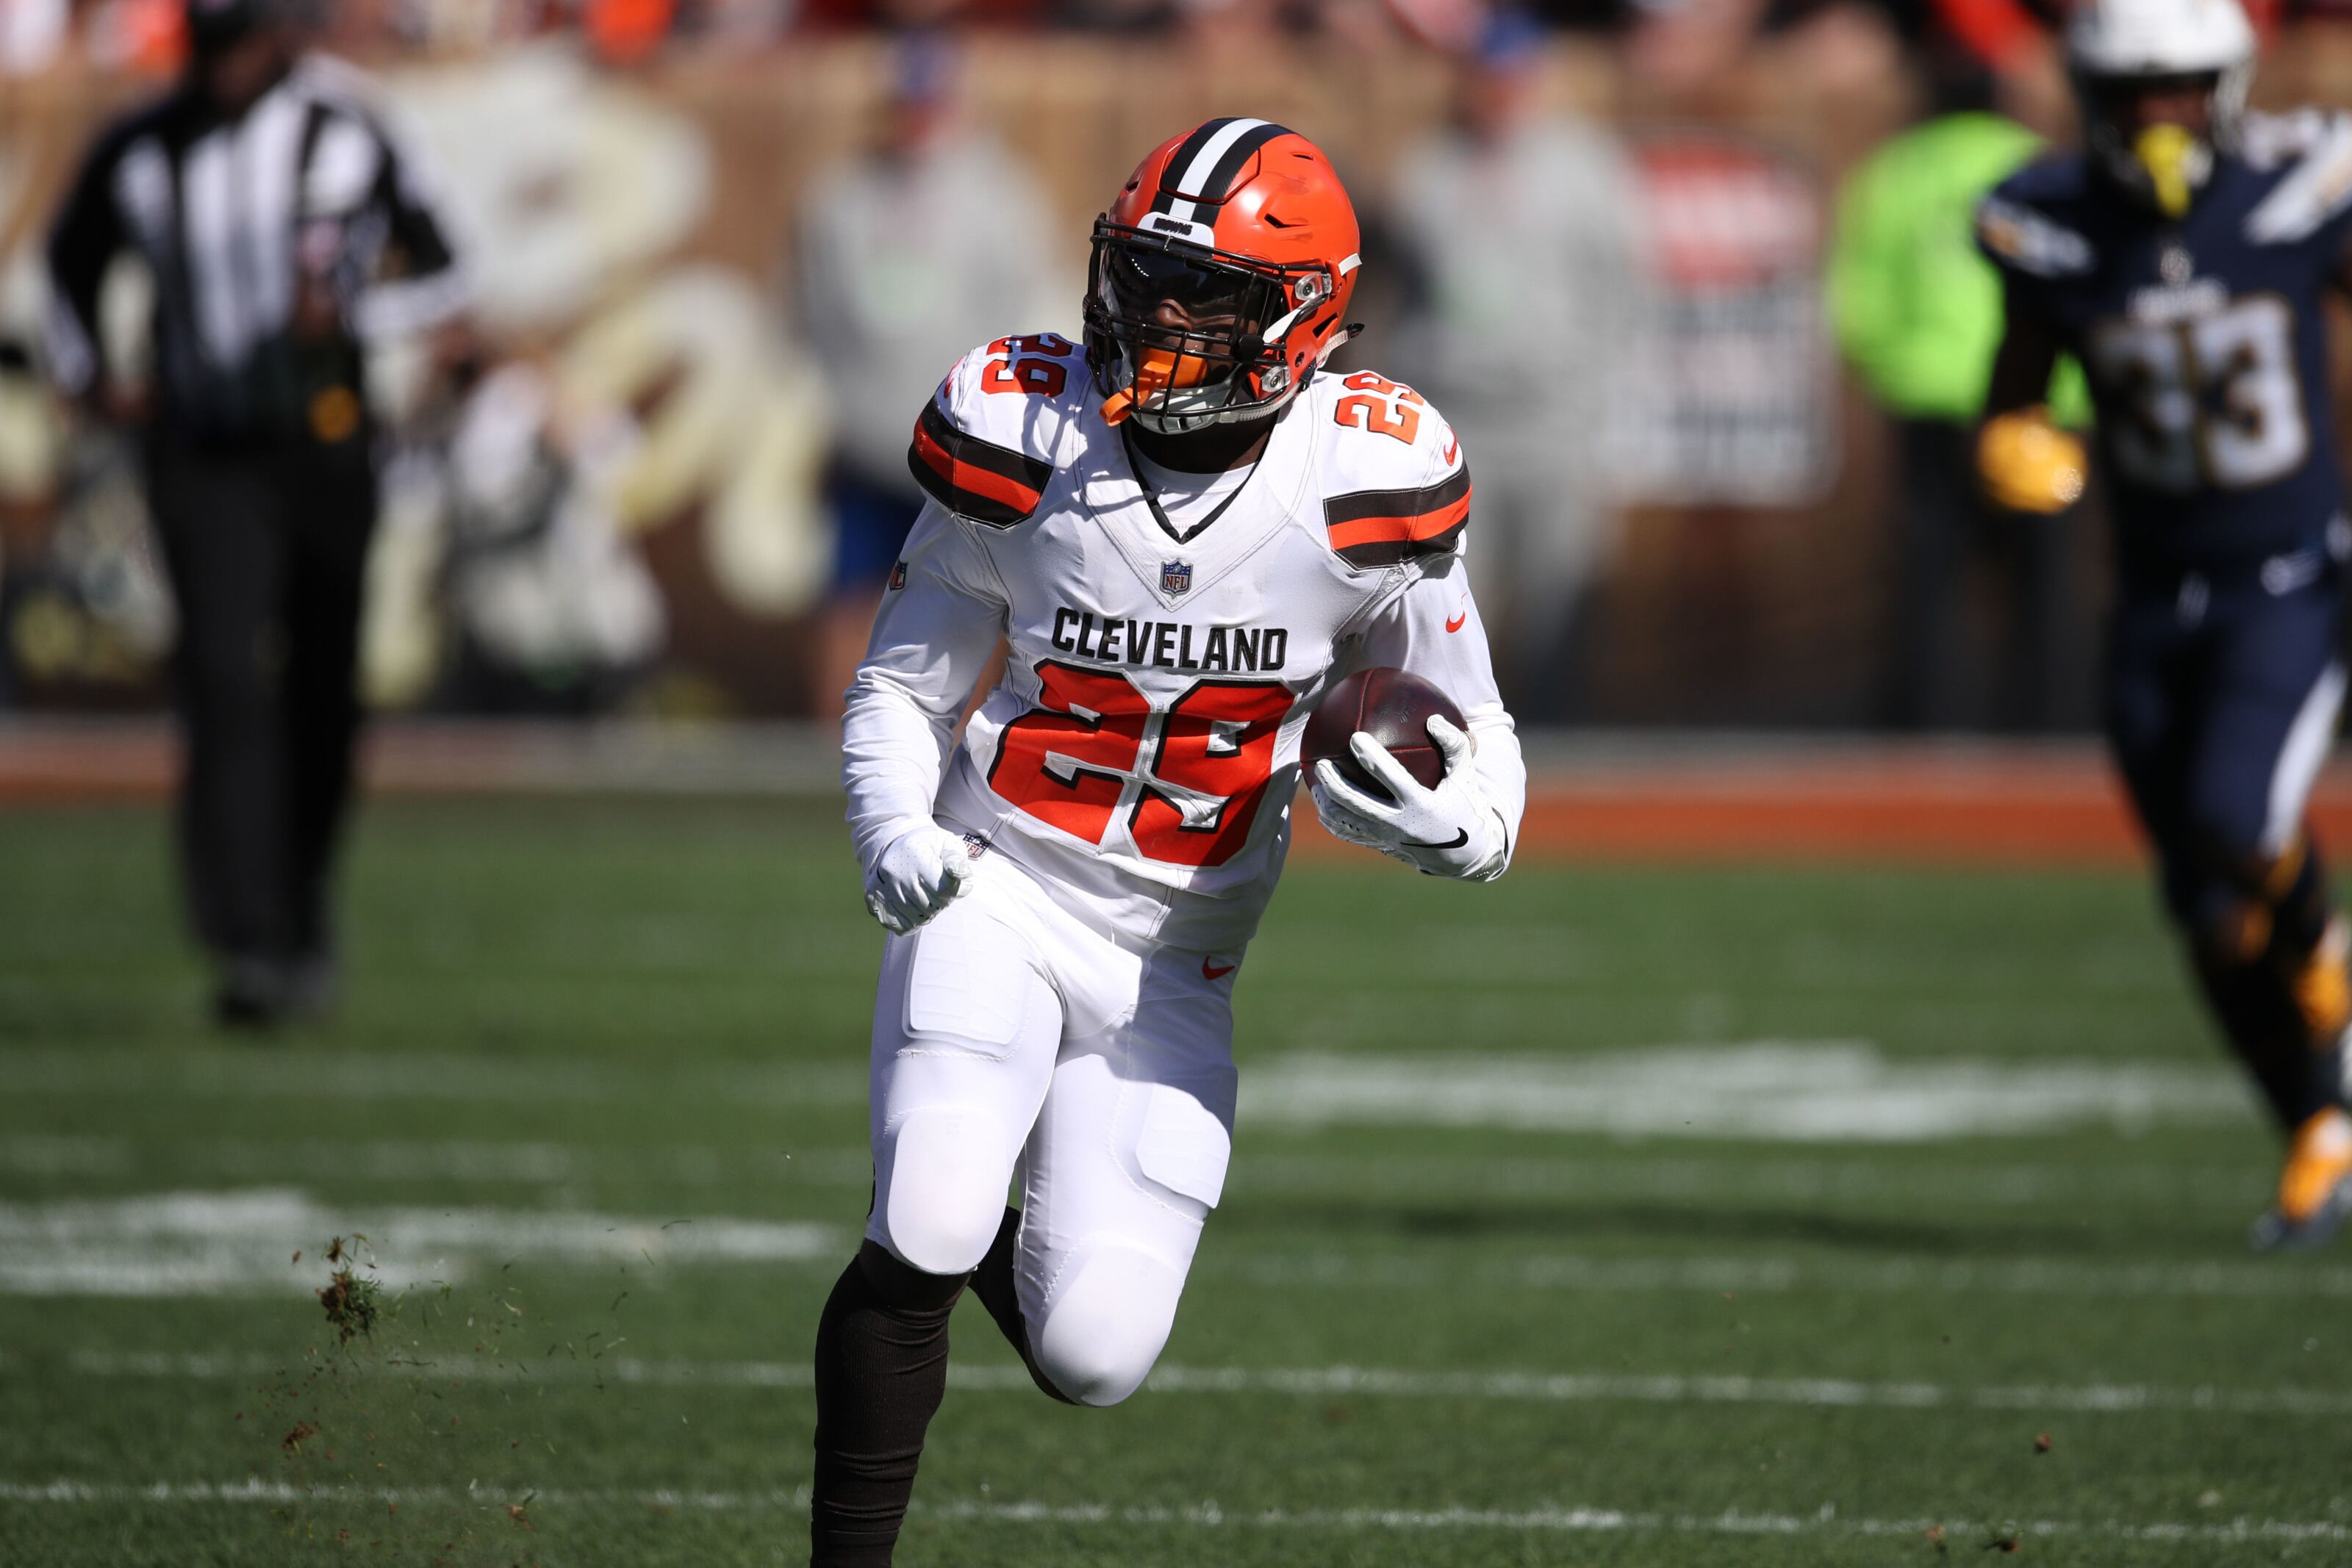 Cleveland Browns: Duke Johnson named one of the most 'Infuriatingly Misused' players in NFL